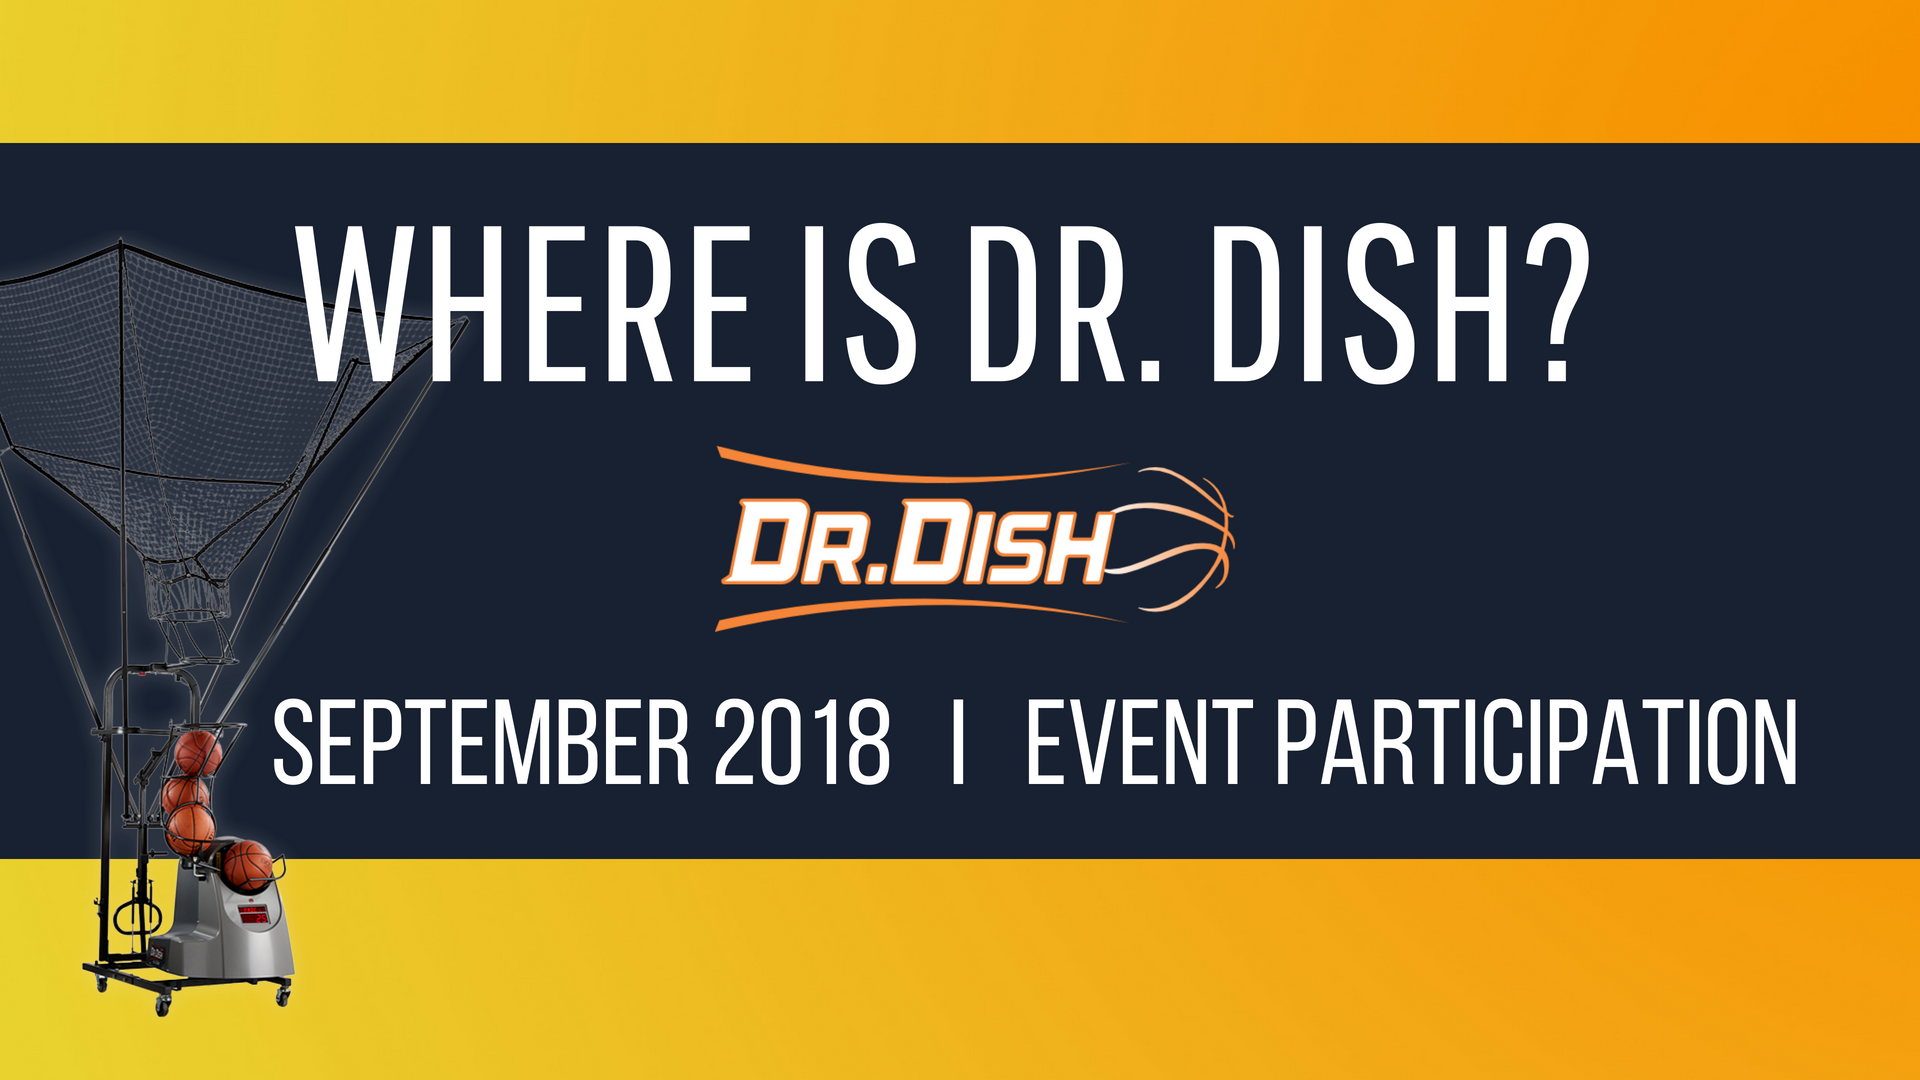 Where is Dr. dish_September 2018event participation (1)